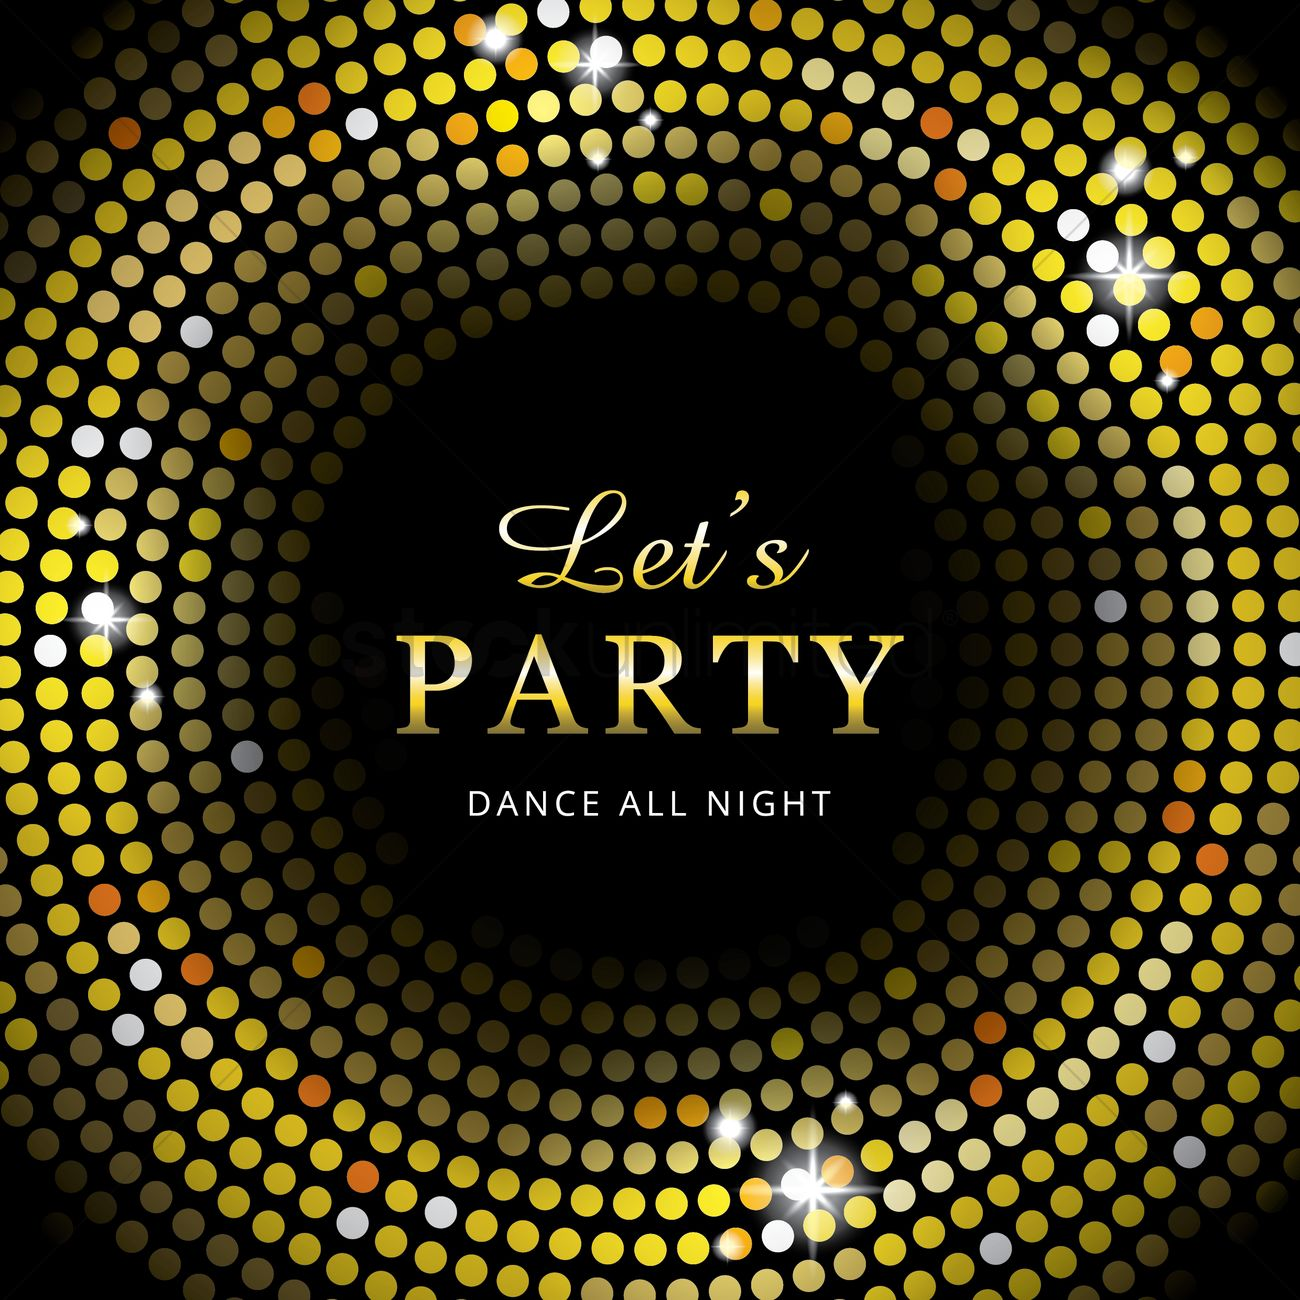 Disco night party Vector Image - 1934353 | StockUnlimited